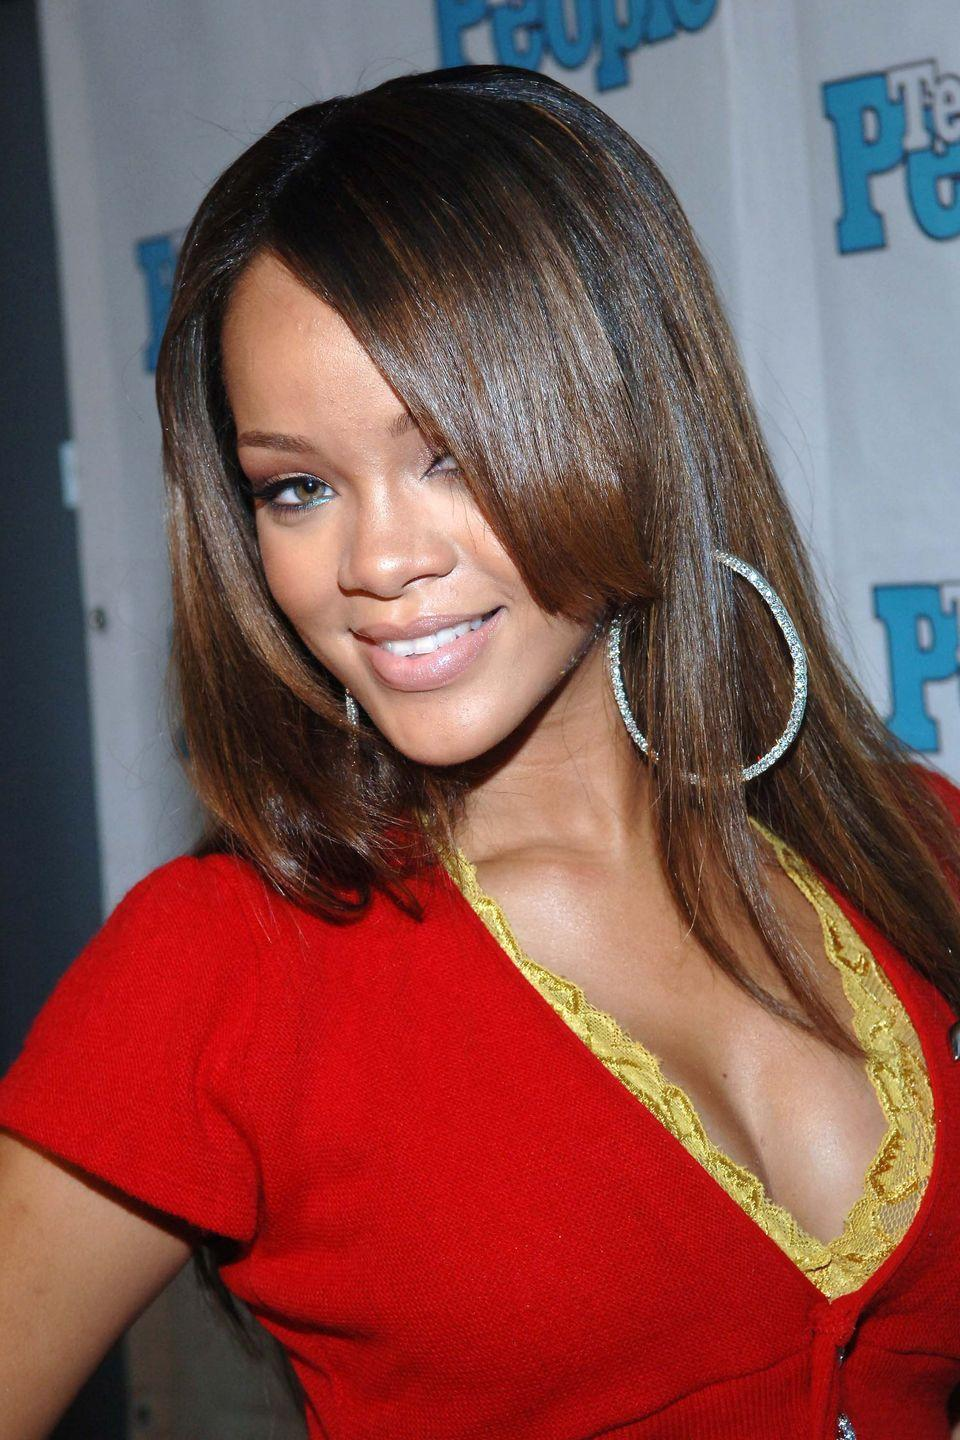 <p>The likely origin of our collective side bangs obsession. Rihanna wears them long with light brown highlights. </p>